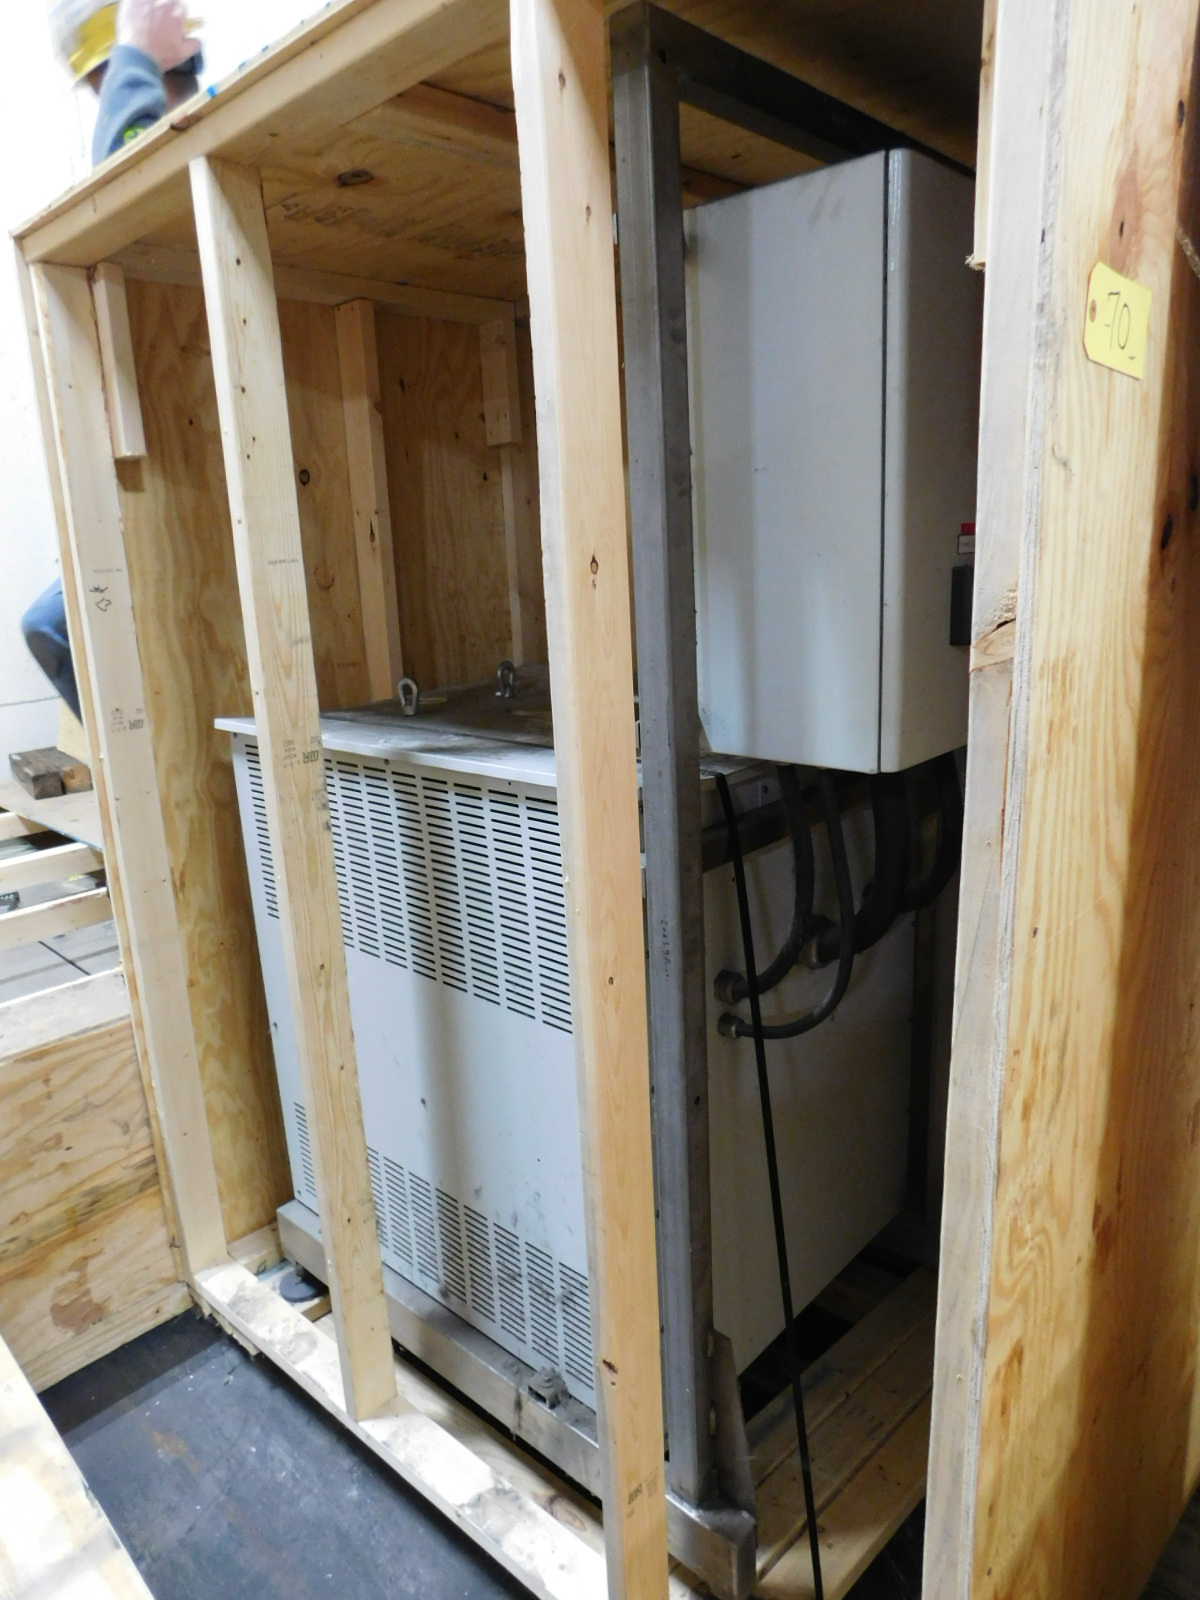 Lot 70 - Legrand UPS Power conditioner 100KVA 480V/192A, Model P:1600KVA, SN: REF:7920021,Mfg 9-1993 :